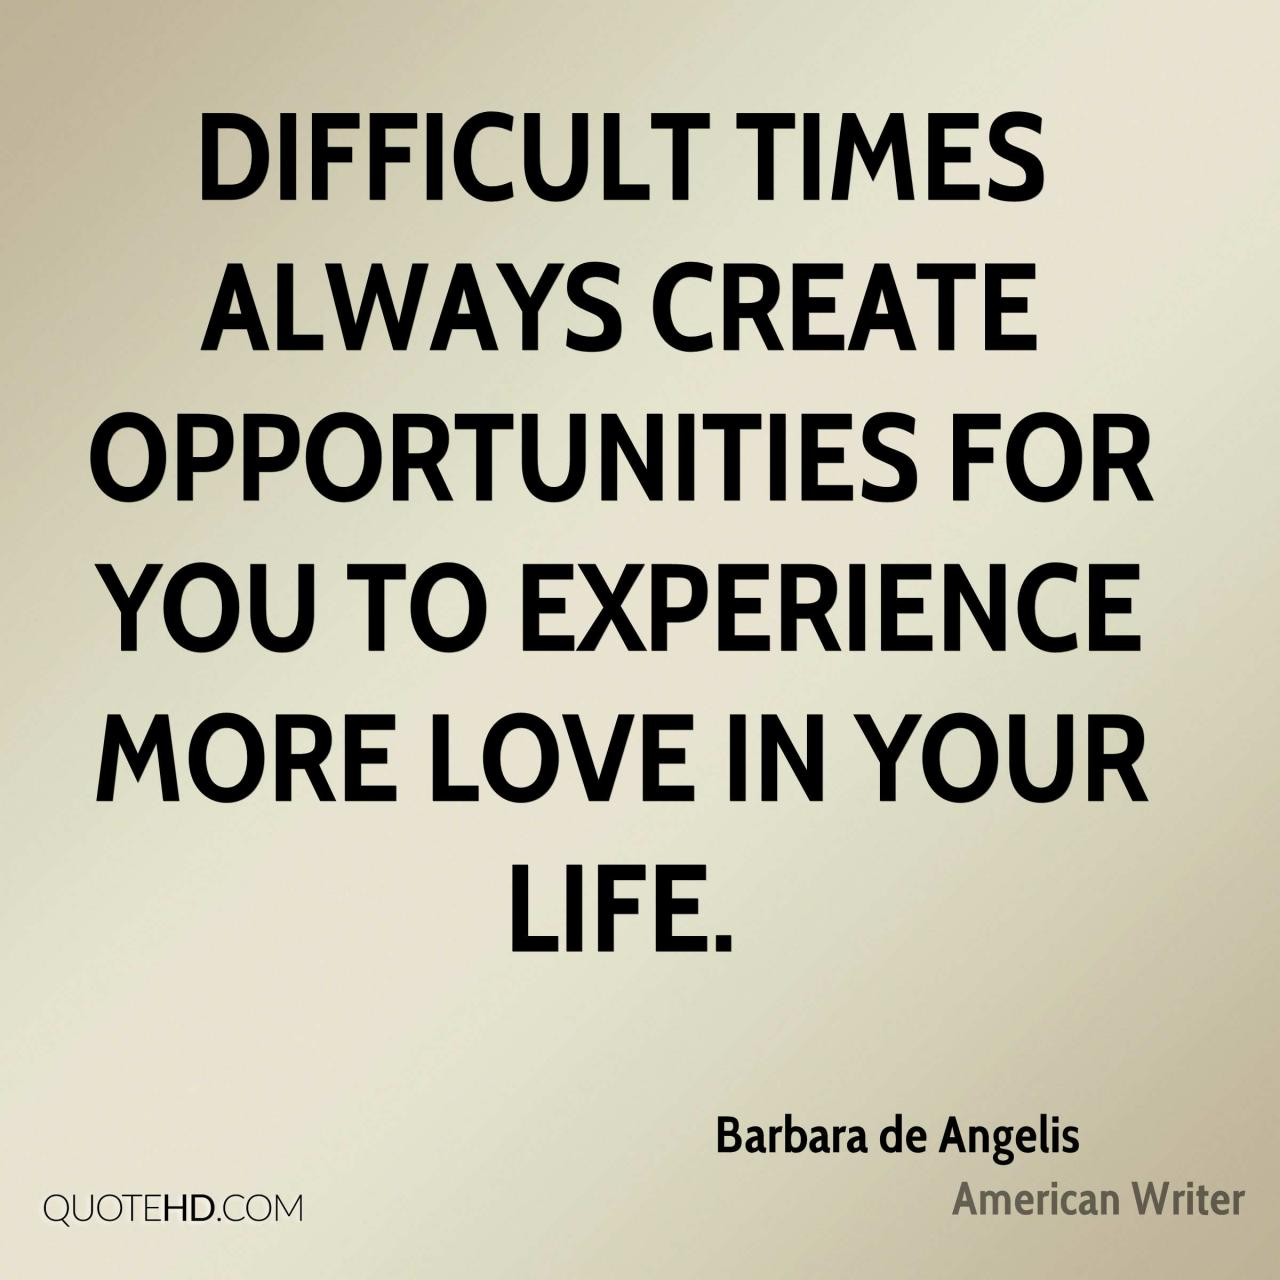 Quotes For Difficult Times In Life Barbara De Angelis Experience Quotes Quotehd